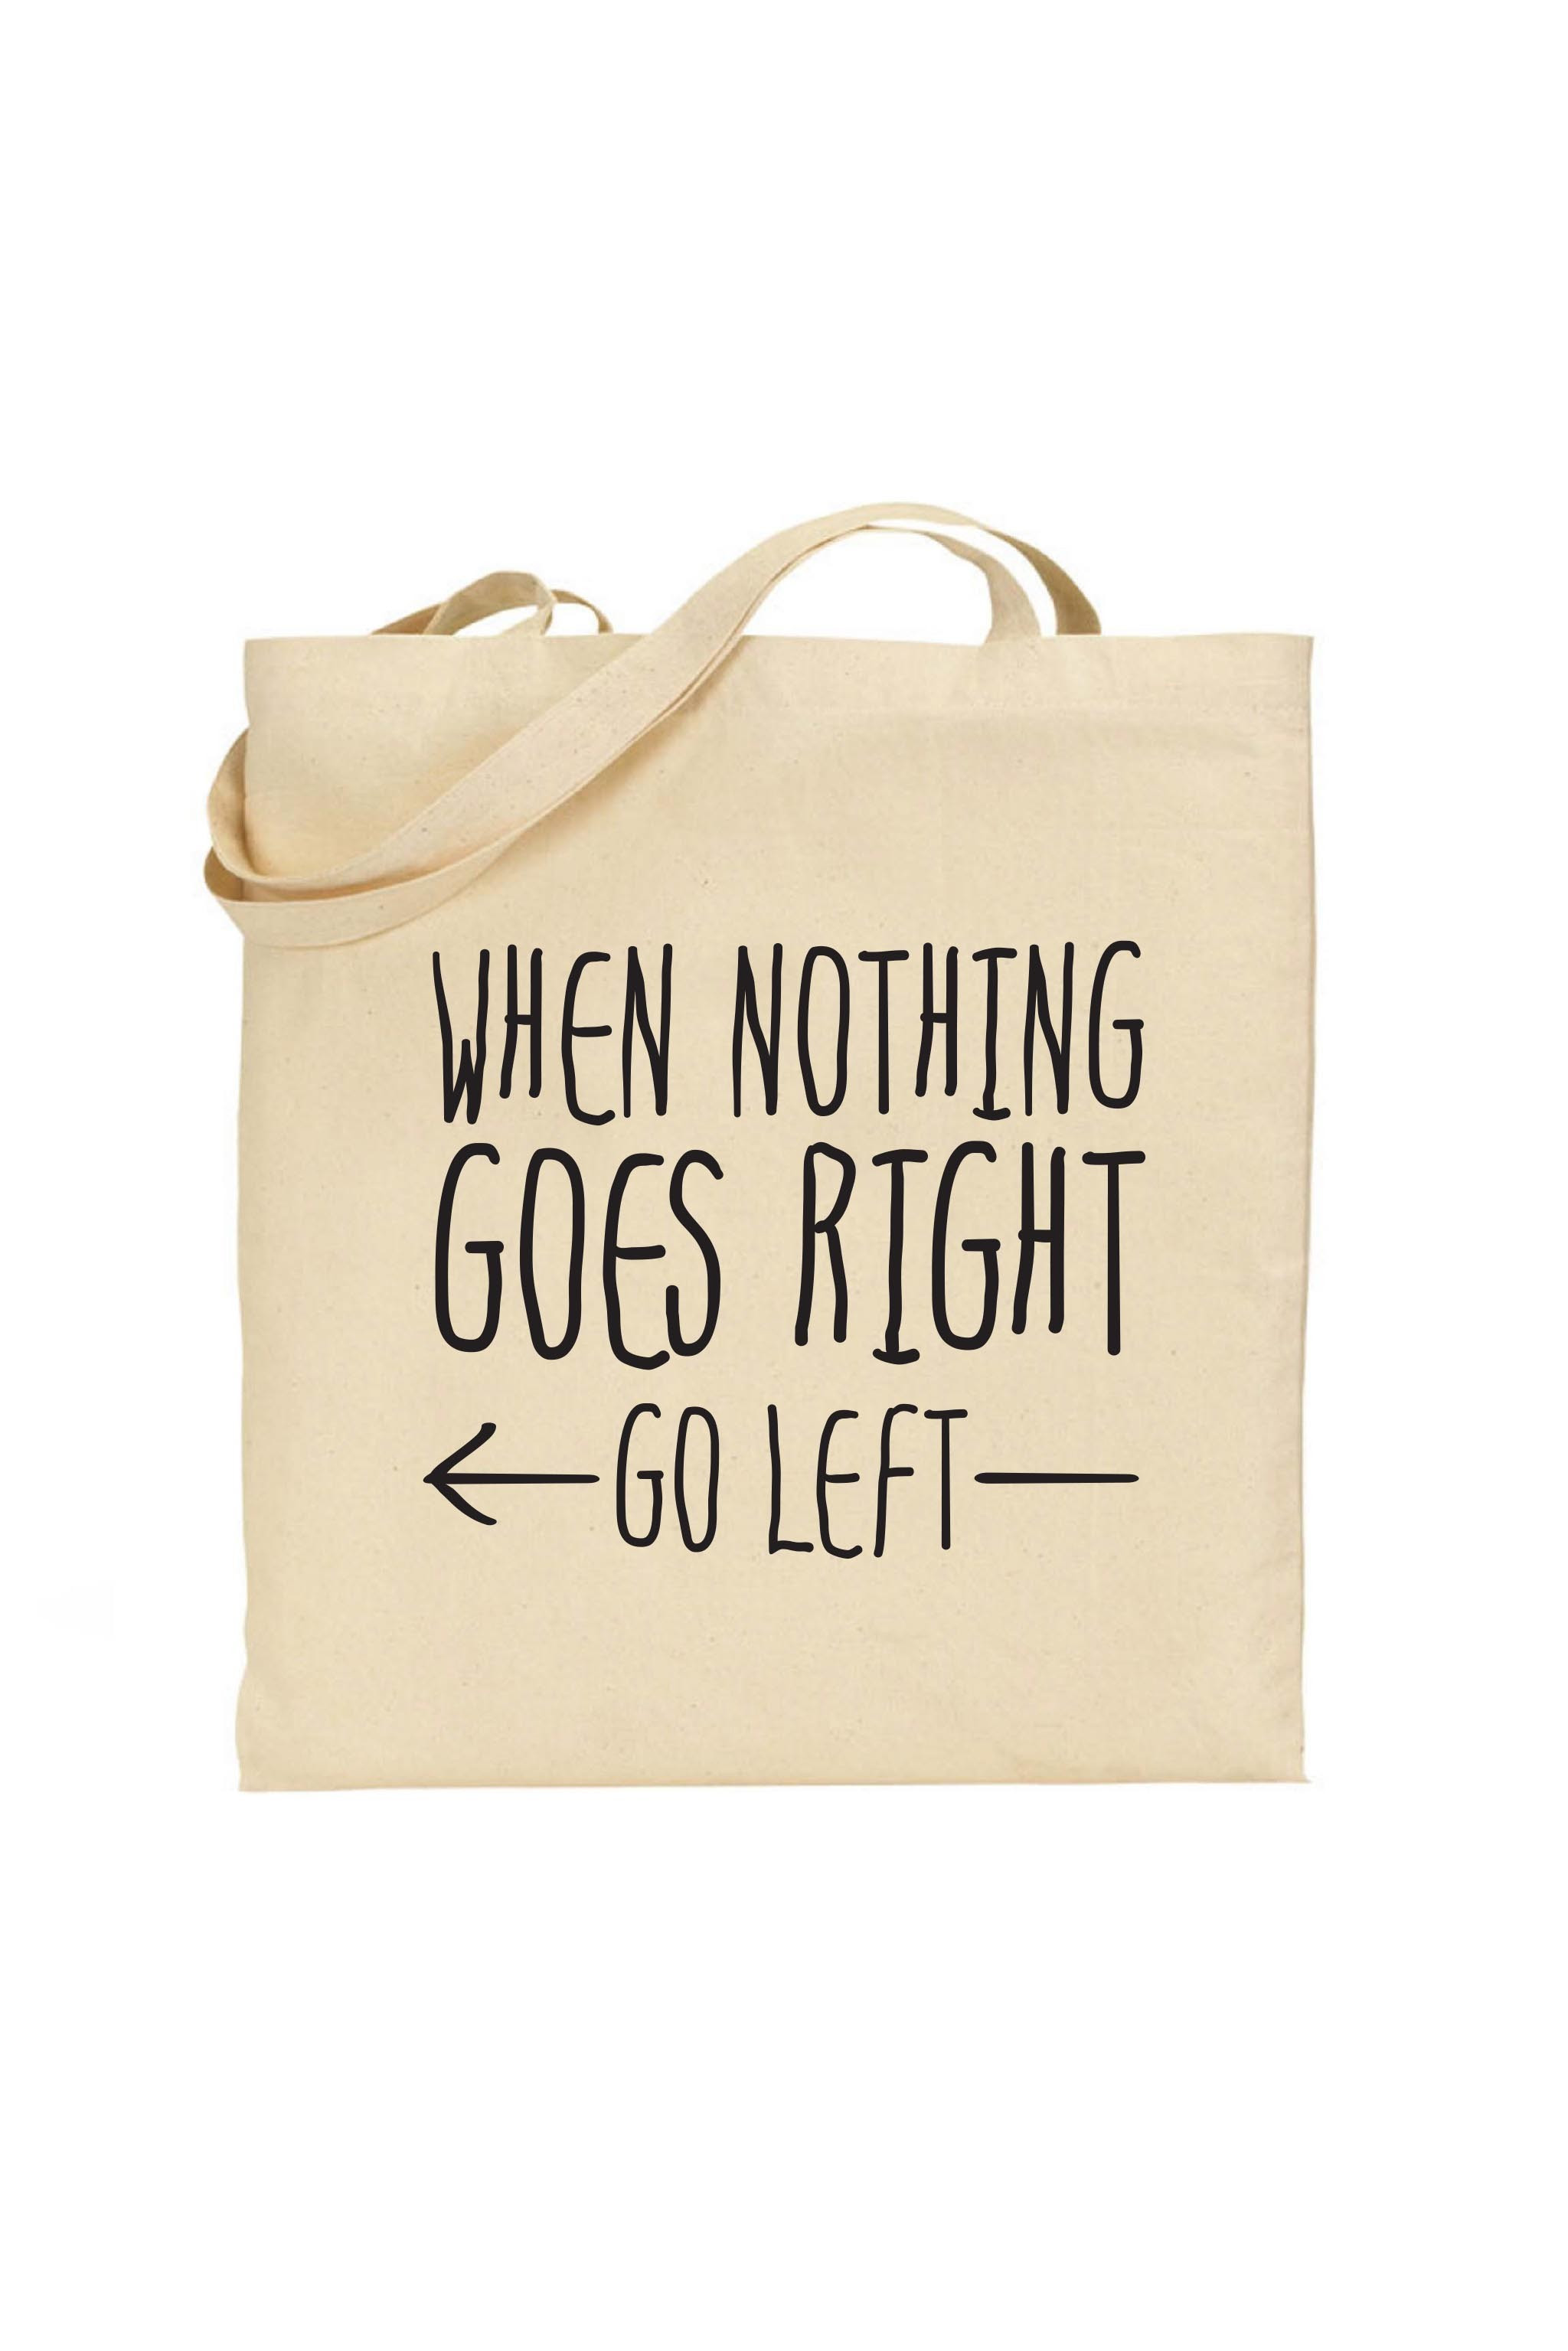 Tote Bag When Nothing Goes Right Go Left Quotes Popular Themes